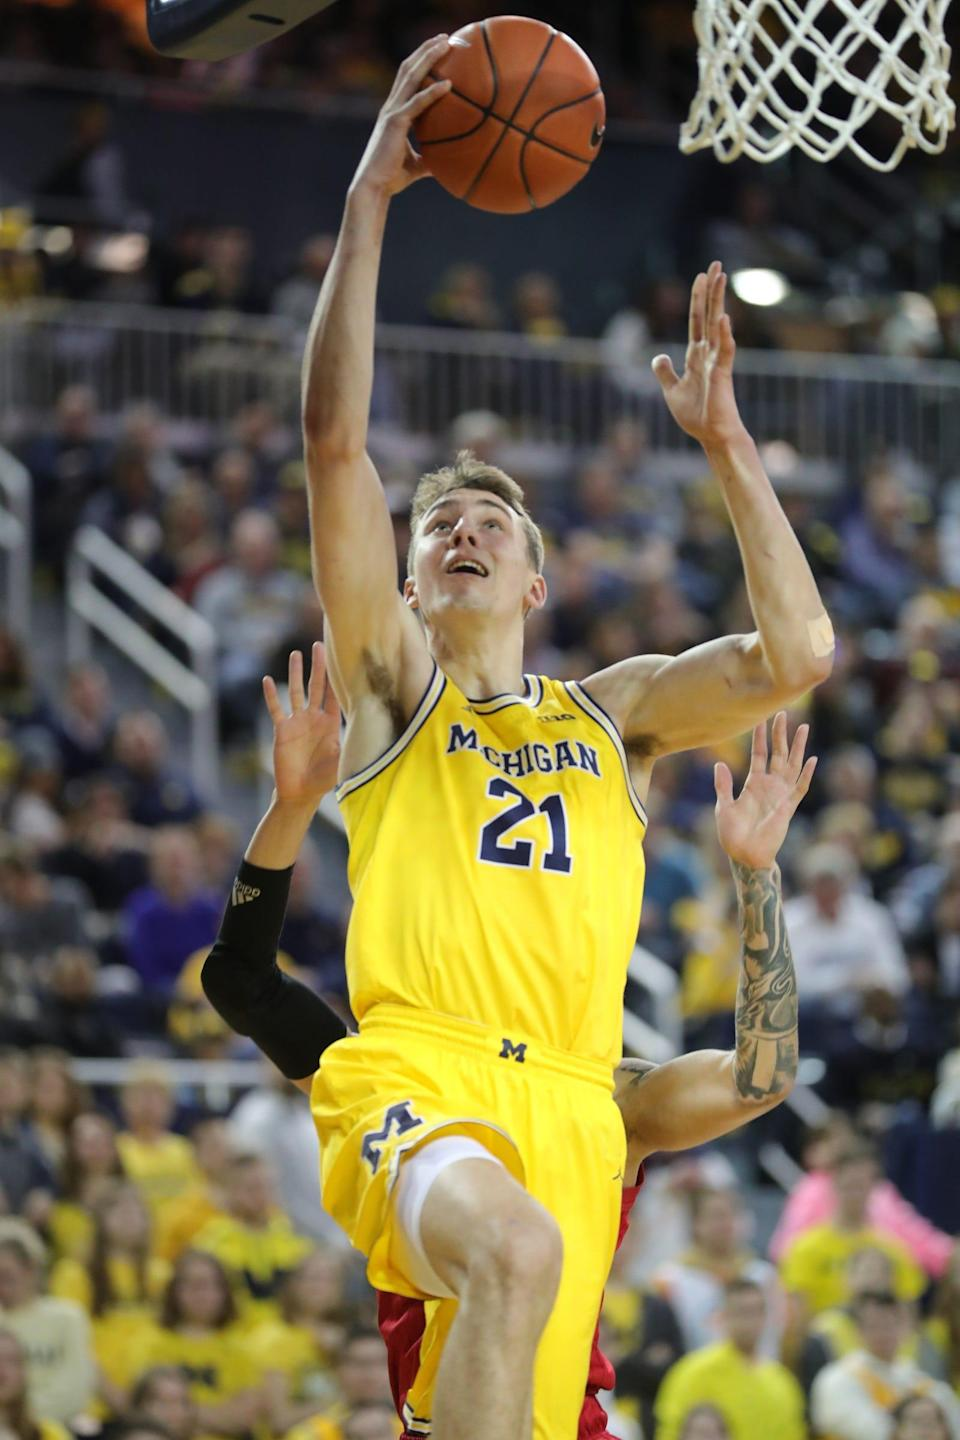 Michigan's Franz Wagner scores against Nebraska during the second half Thursday, March 5, 2020 at the Crisler Center in Ann Arbor.